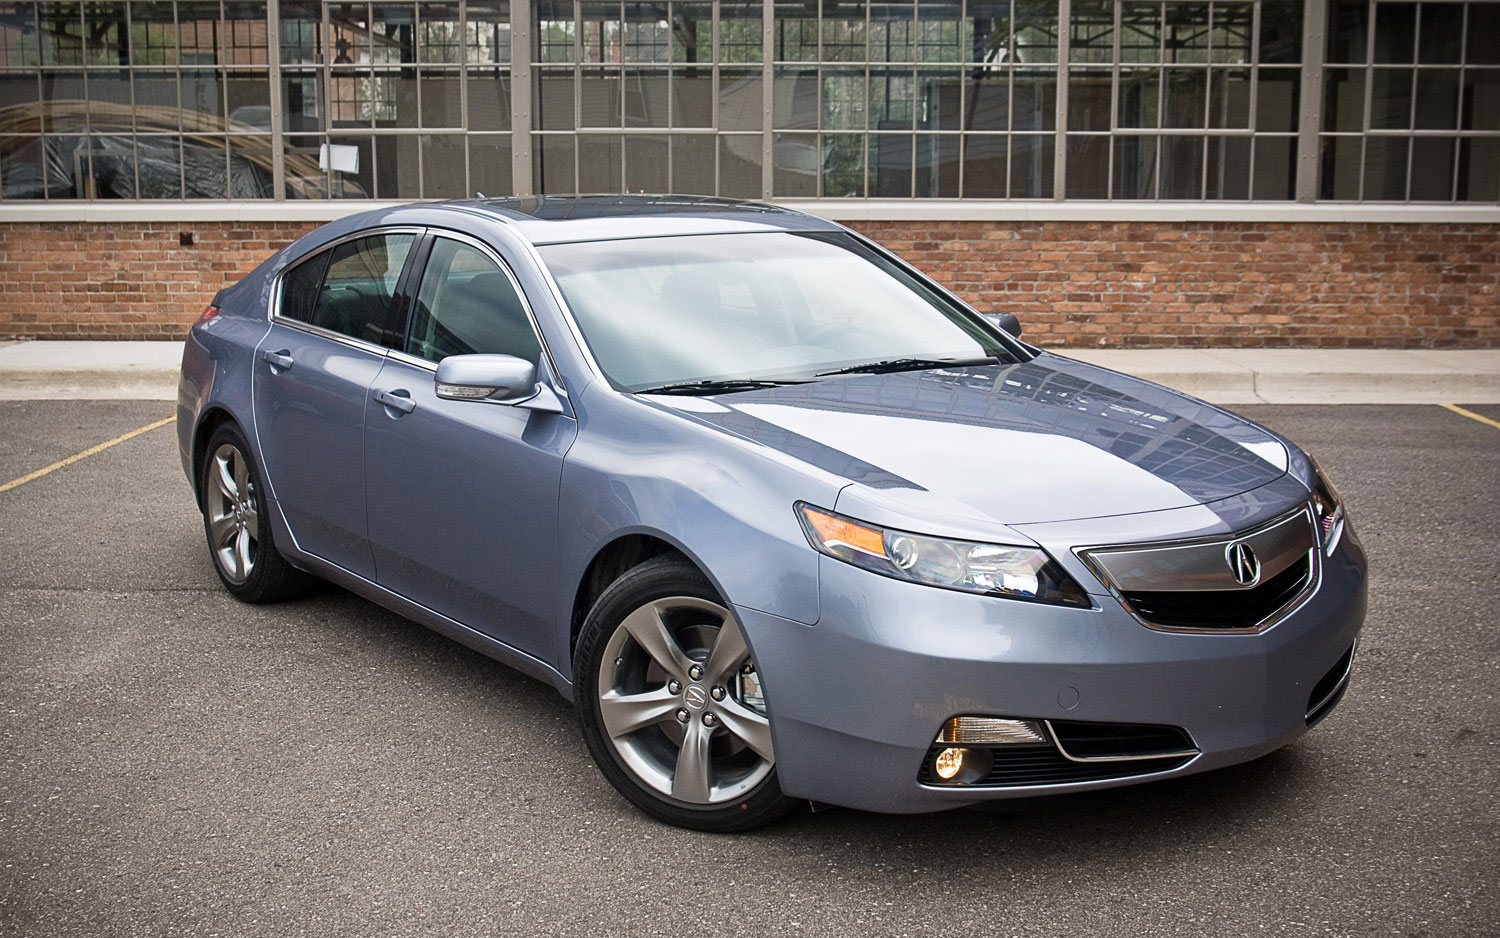 2012 Acura Tl Sh Awd Front Right View Parked1